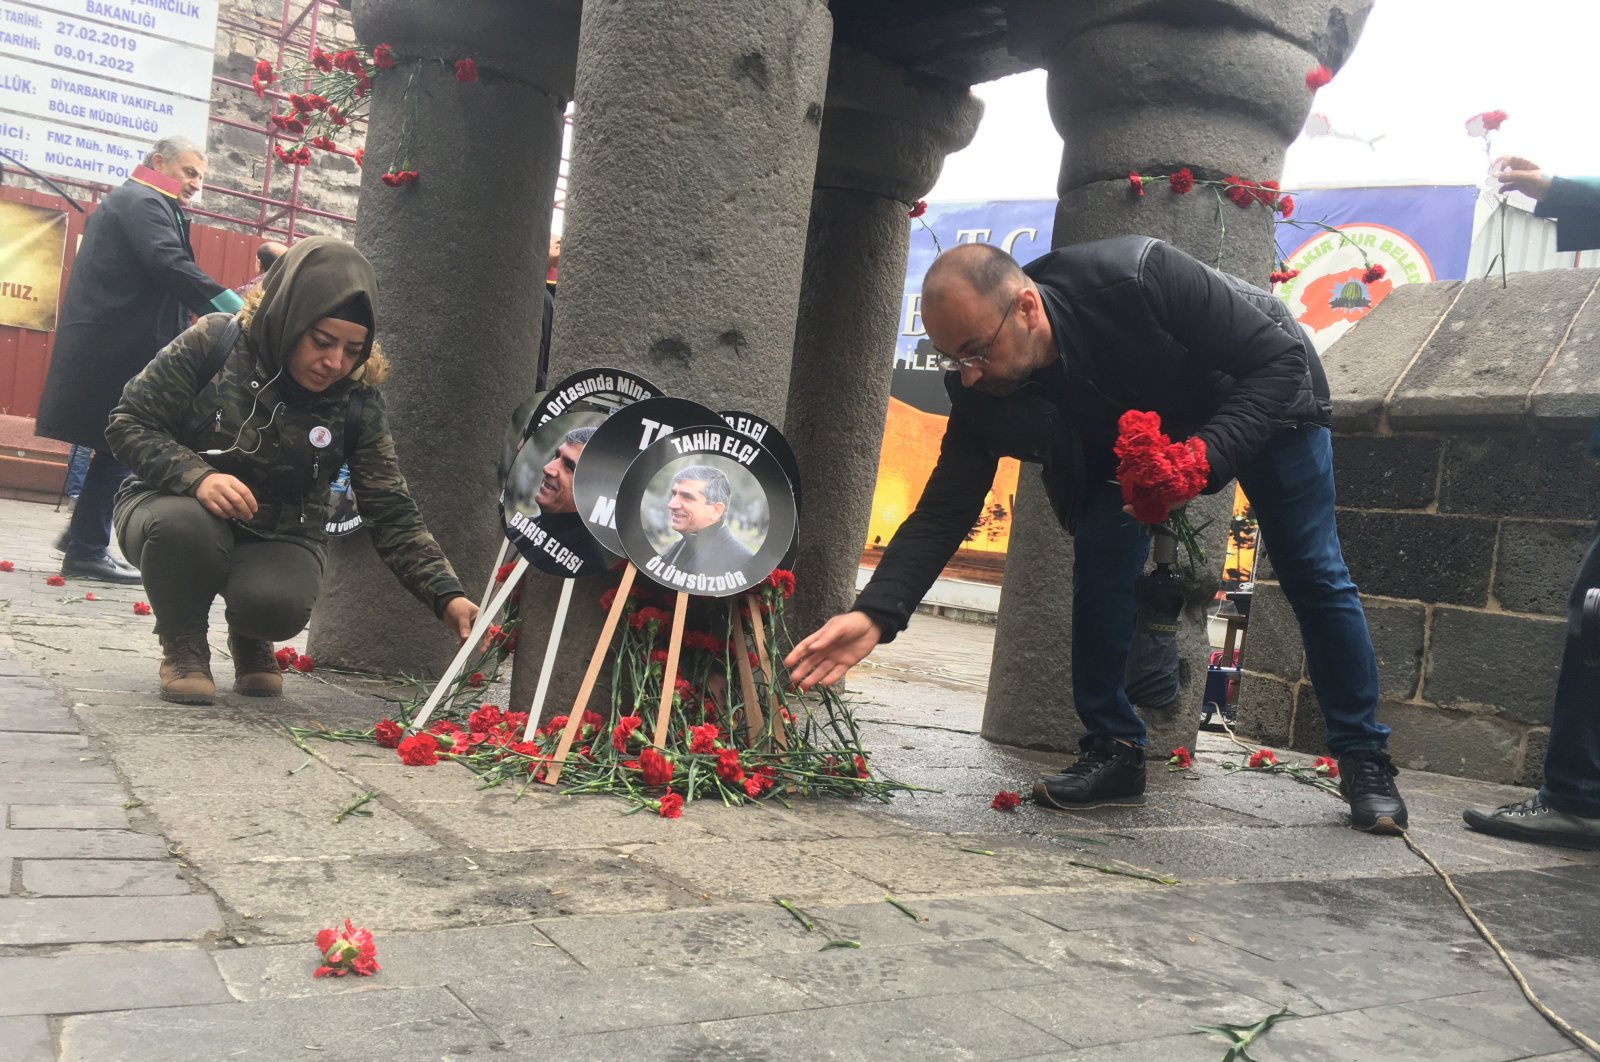 People leave flowers at the scene where Tahir Elçi was killed, in Diyarbakır, Turkey, Nov. 28, 2019. (DHA Photo)